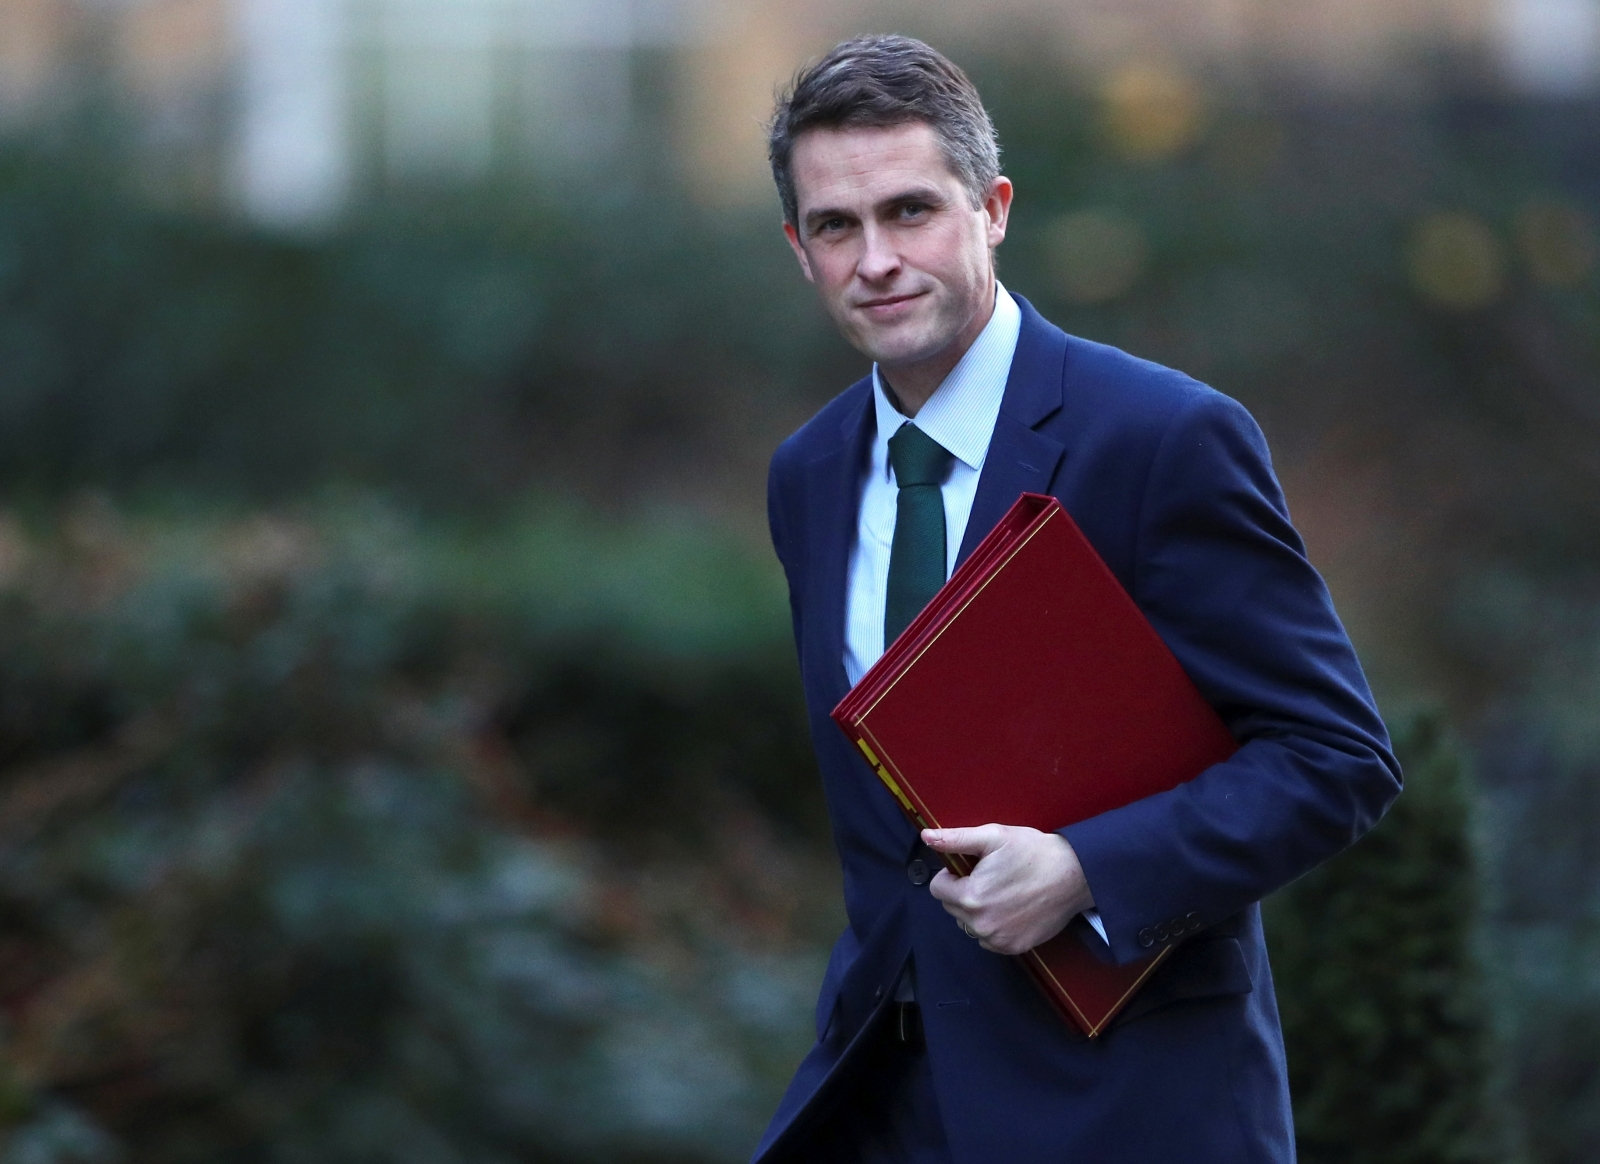 Defence secretary Gavin Williamson's fears worthy of Monty Python, says Moscow